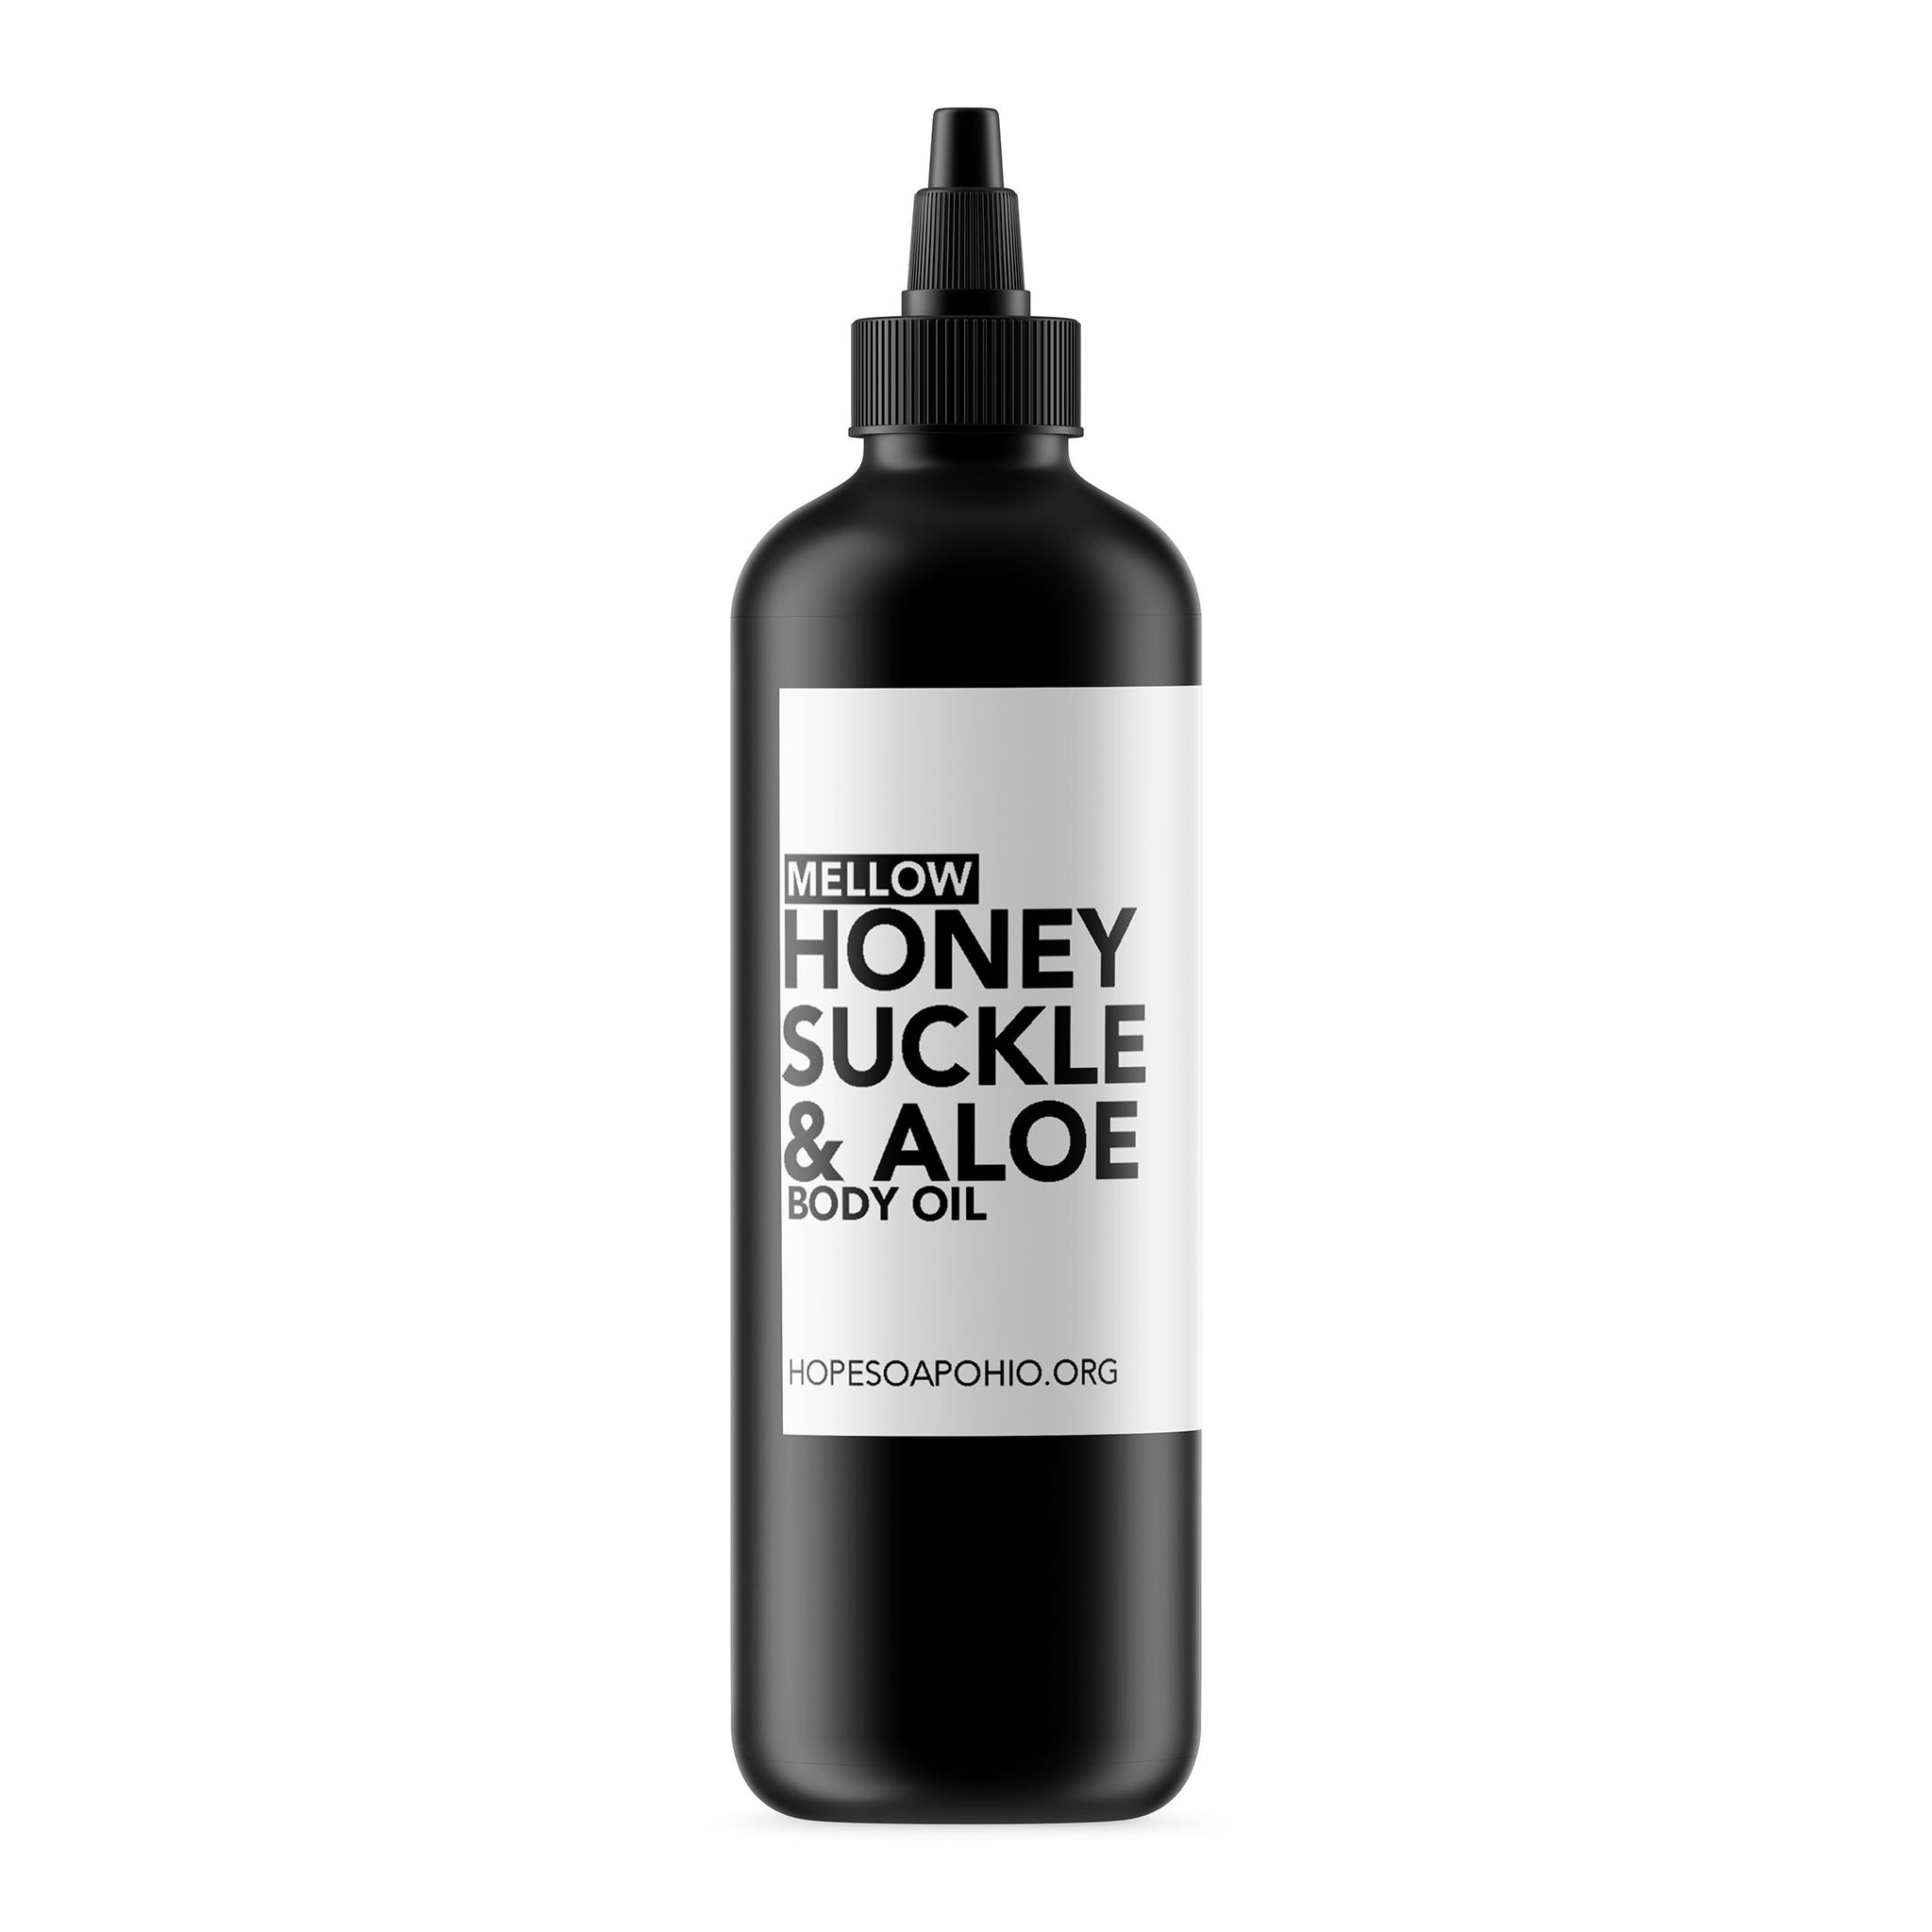 Honeysuckle & Aloe Body Oil - HOPESOAPOHIO